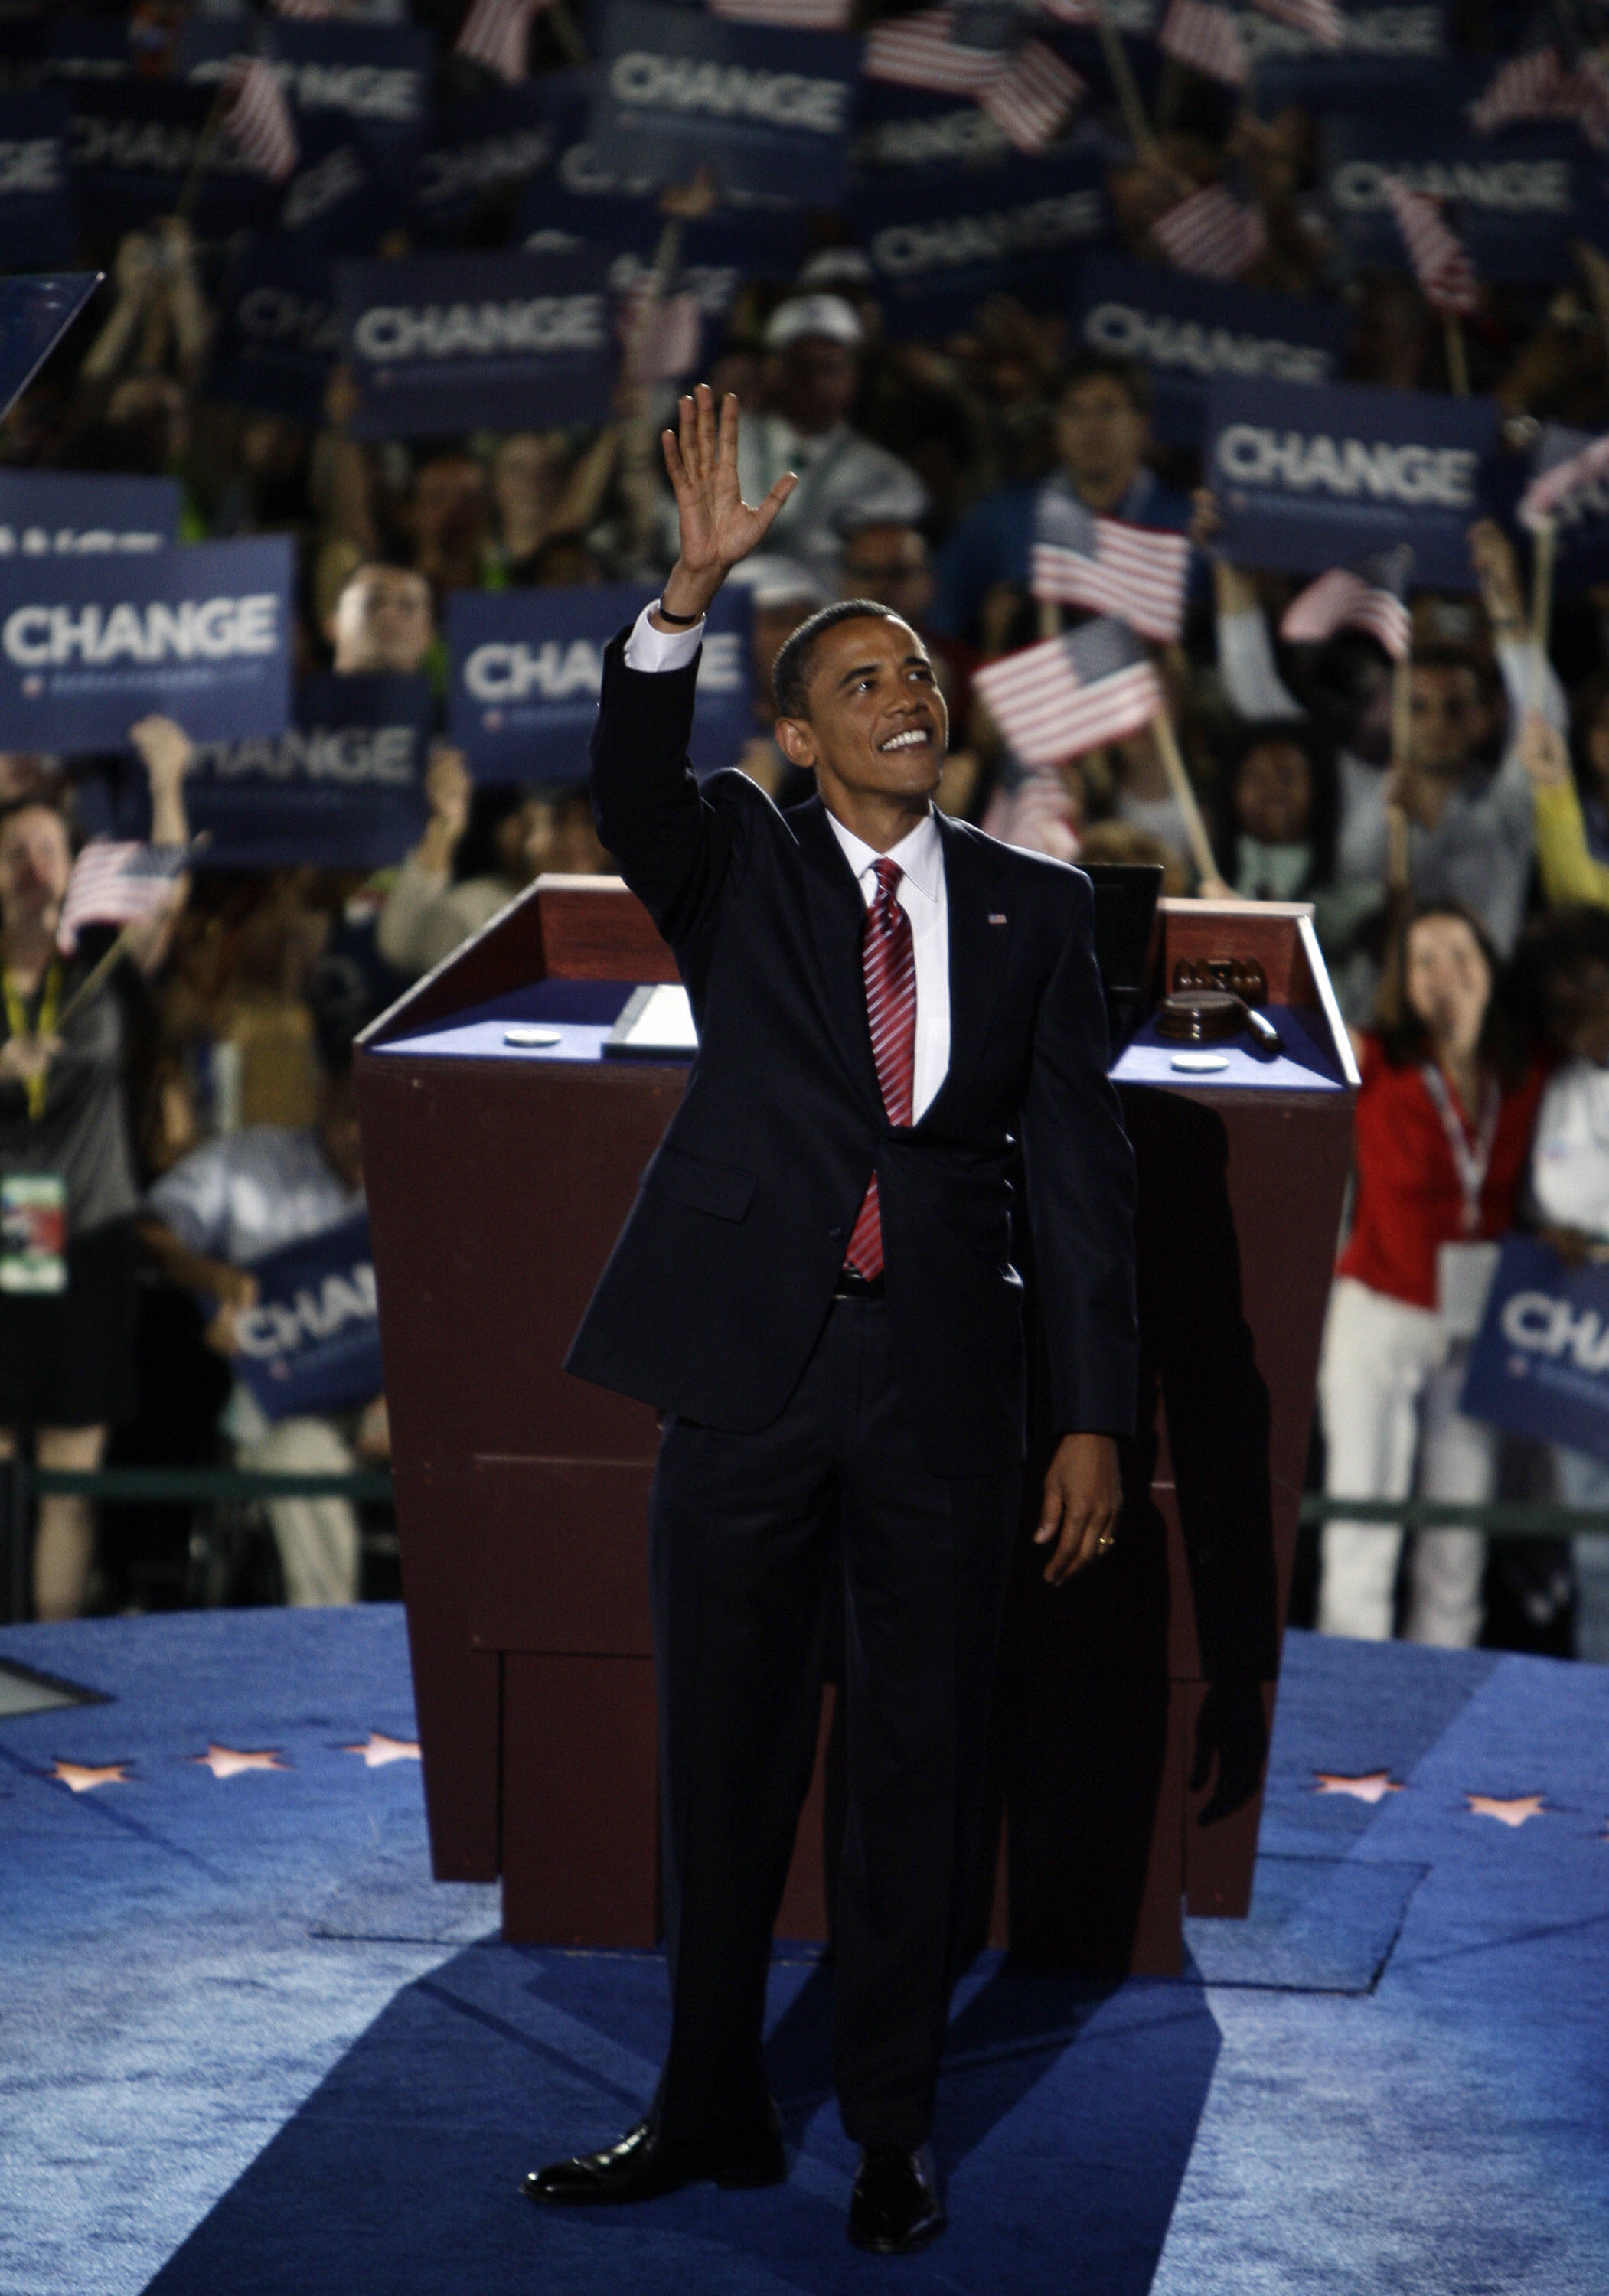 Obama at the 2008 DNC